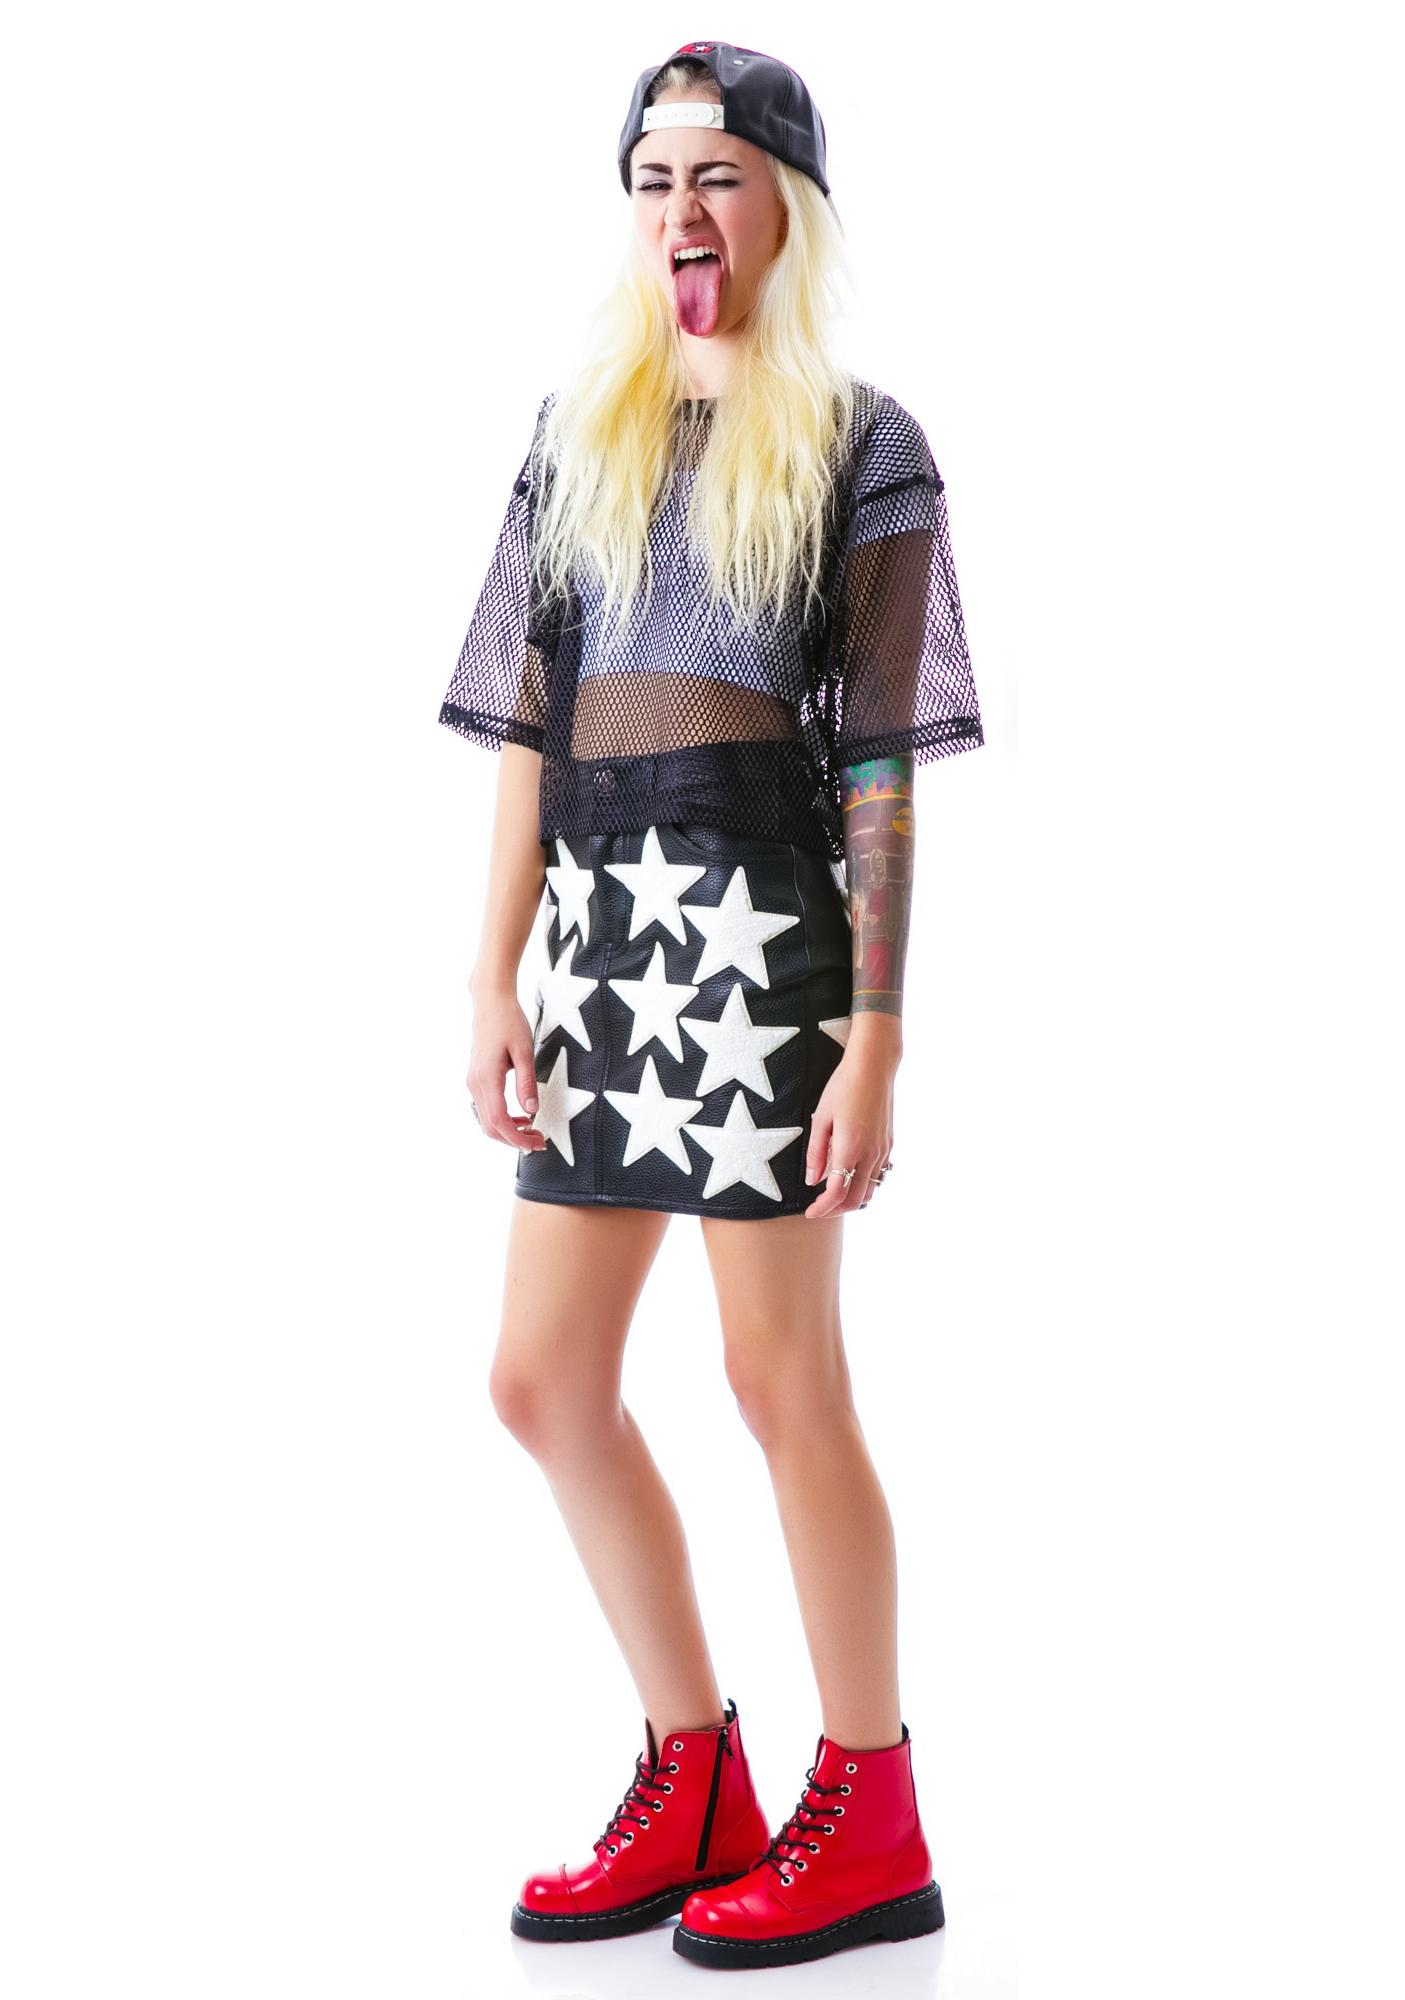 Joyrich All Star Patched High Waist Skirt